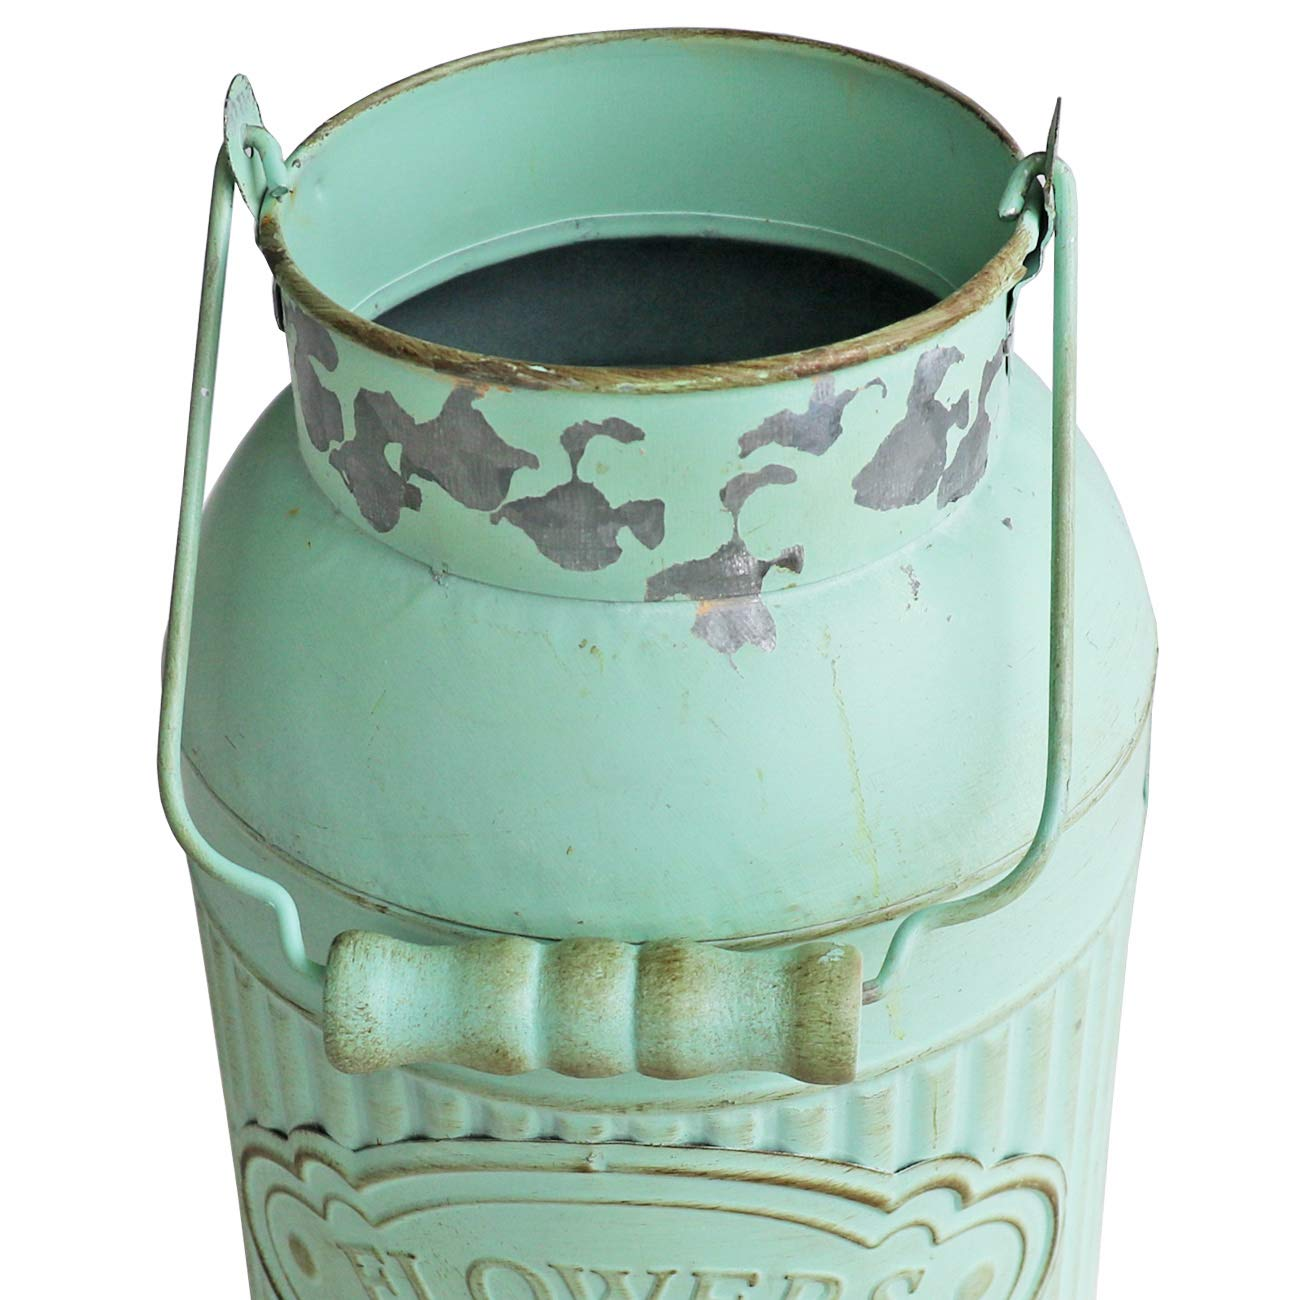 HyFanStr Shabby Chic Green Painted Milk Can Style Metal Vase Flower Pitcher Jug Pot by HyFanStr (Image #5)